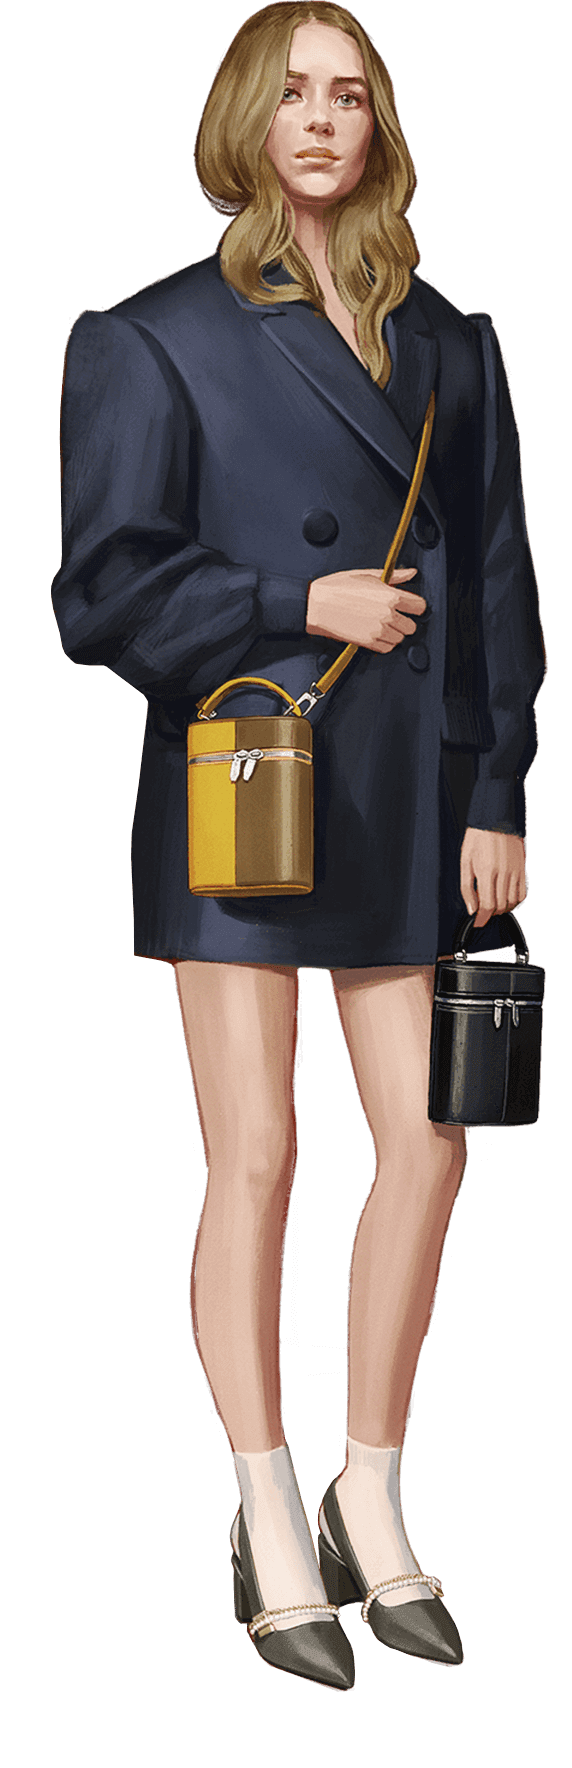 A compilation of illustrations from the CHARLES & KEITH Autumn Winter 2020 campaign - CHARLES & KEITH - Model 2